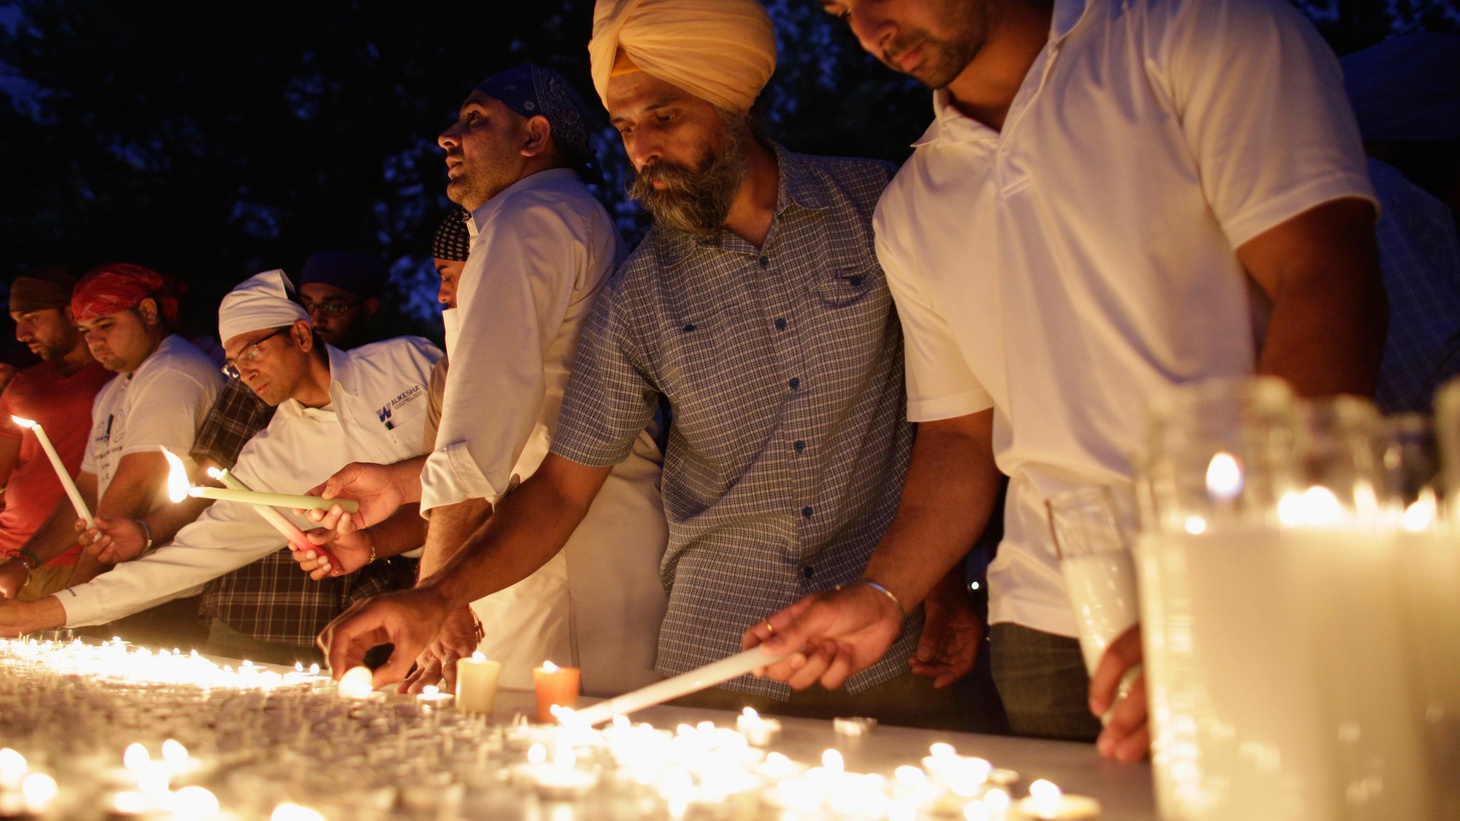 Wade Michael Page attack on a Sikh temple in Oak Creek, Wisconsin raises disturbing questions about American intolerance of a major religion.